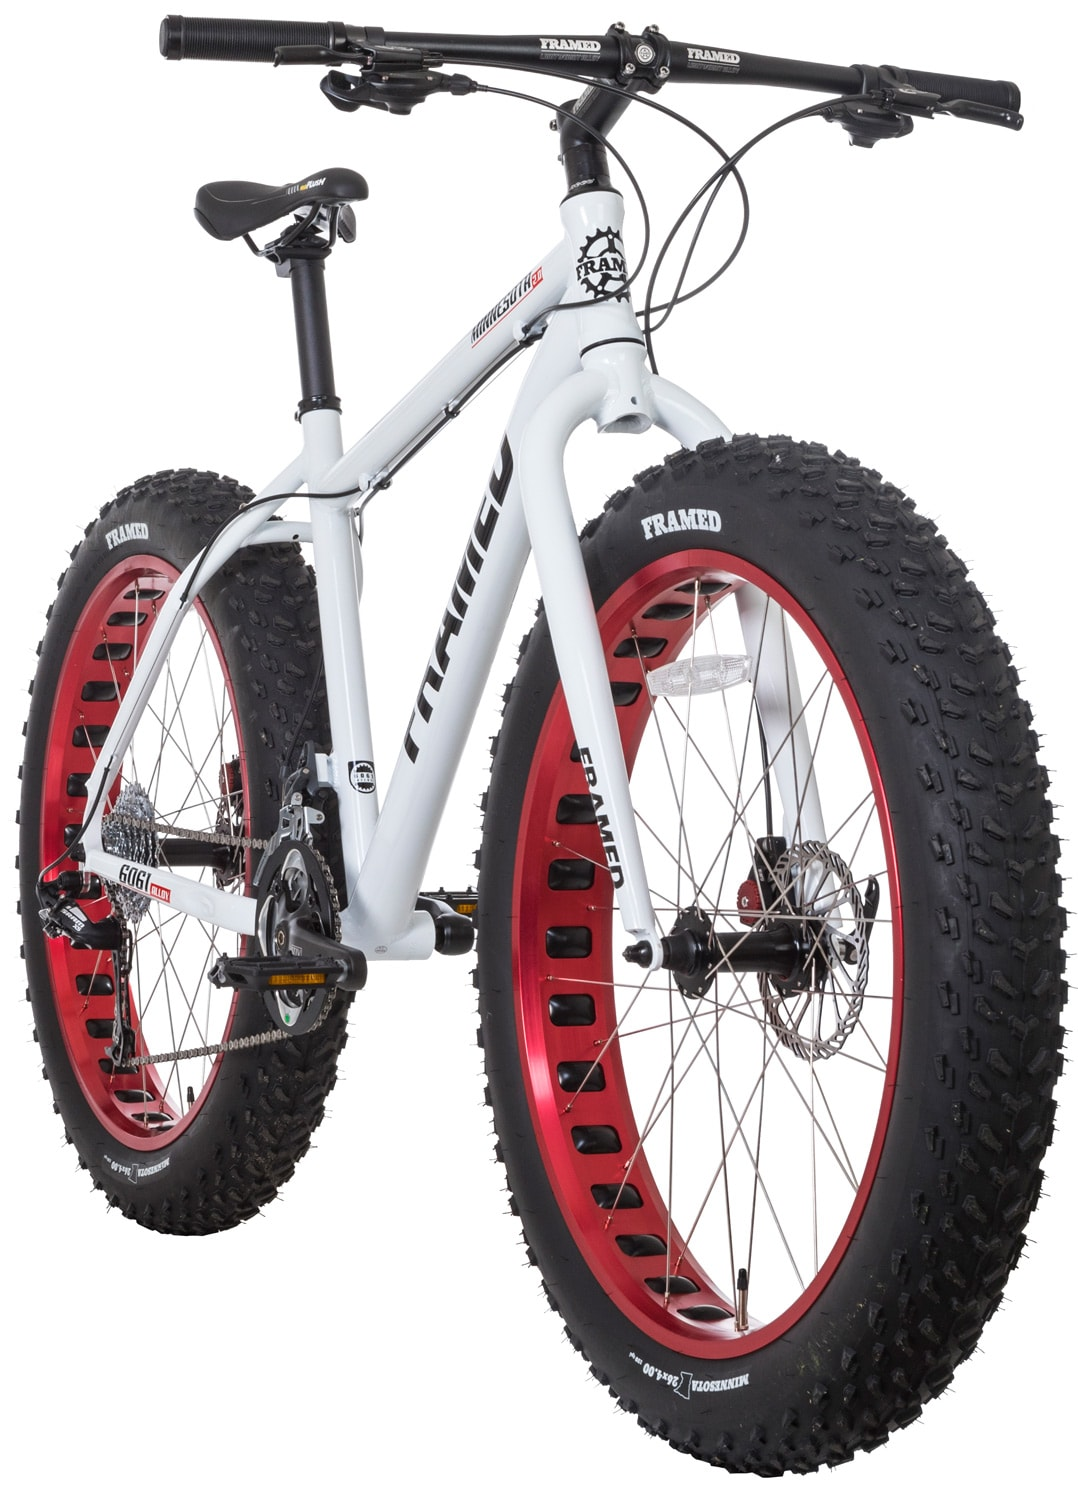 How To Buy a Dependable, Used Fat Bike for Under $1,000 ... |Fat Bike